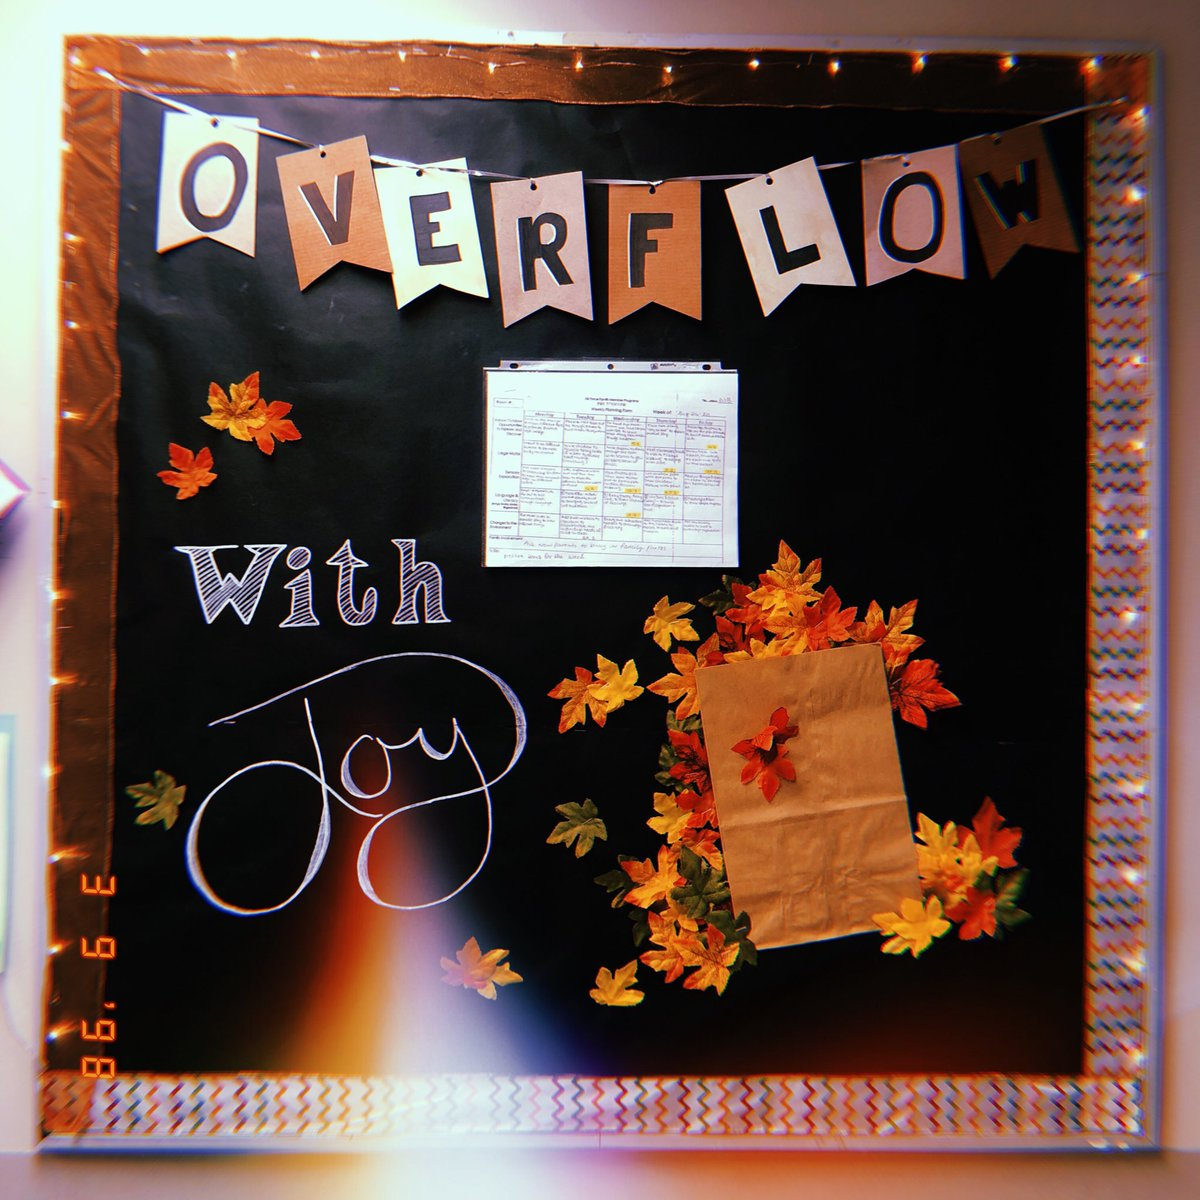 test Twitter Media - Happy autumn, loves! 🍂  So sorry the vlog didn't go up last night. I'm shooting for TONIGHT instead. I will let you all know when it's up!! In the mean time, what do you think of my classroom board?? 😁 https://t.co/laRApX2uFY